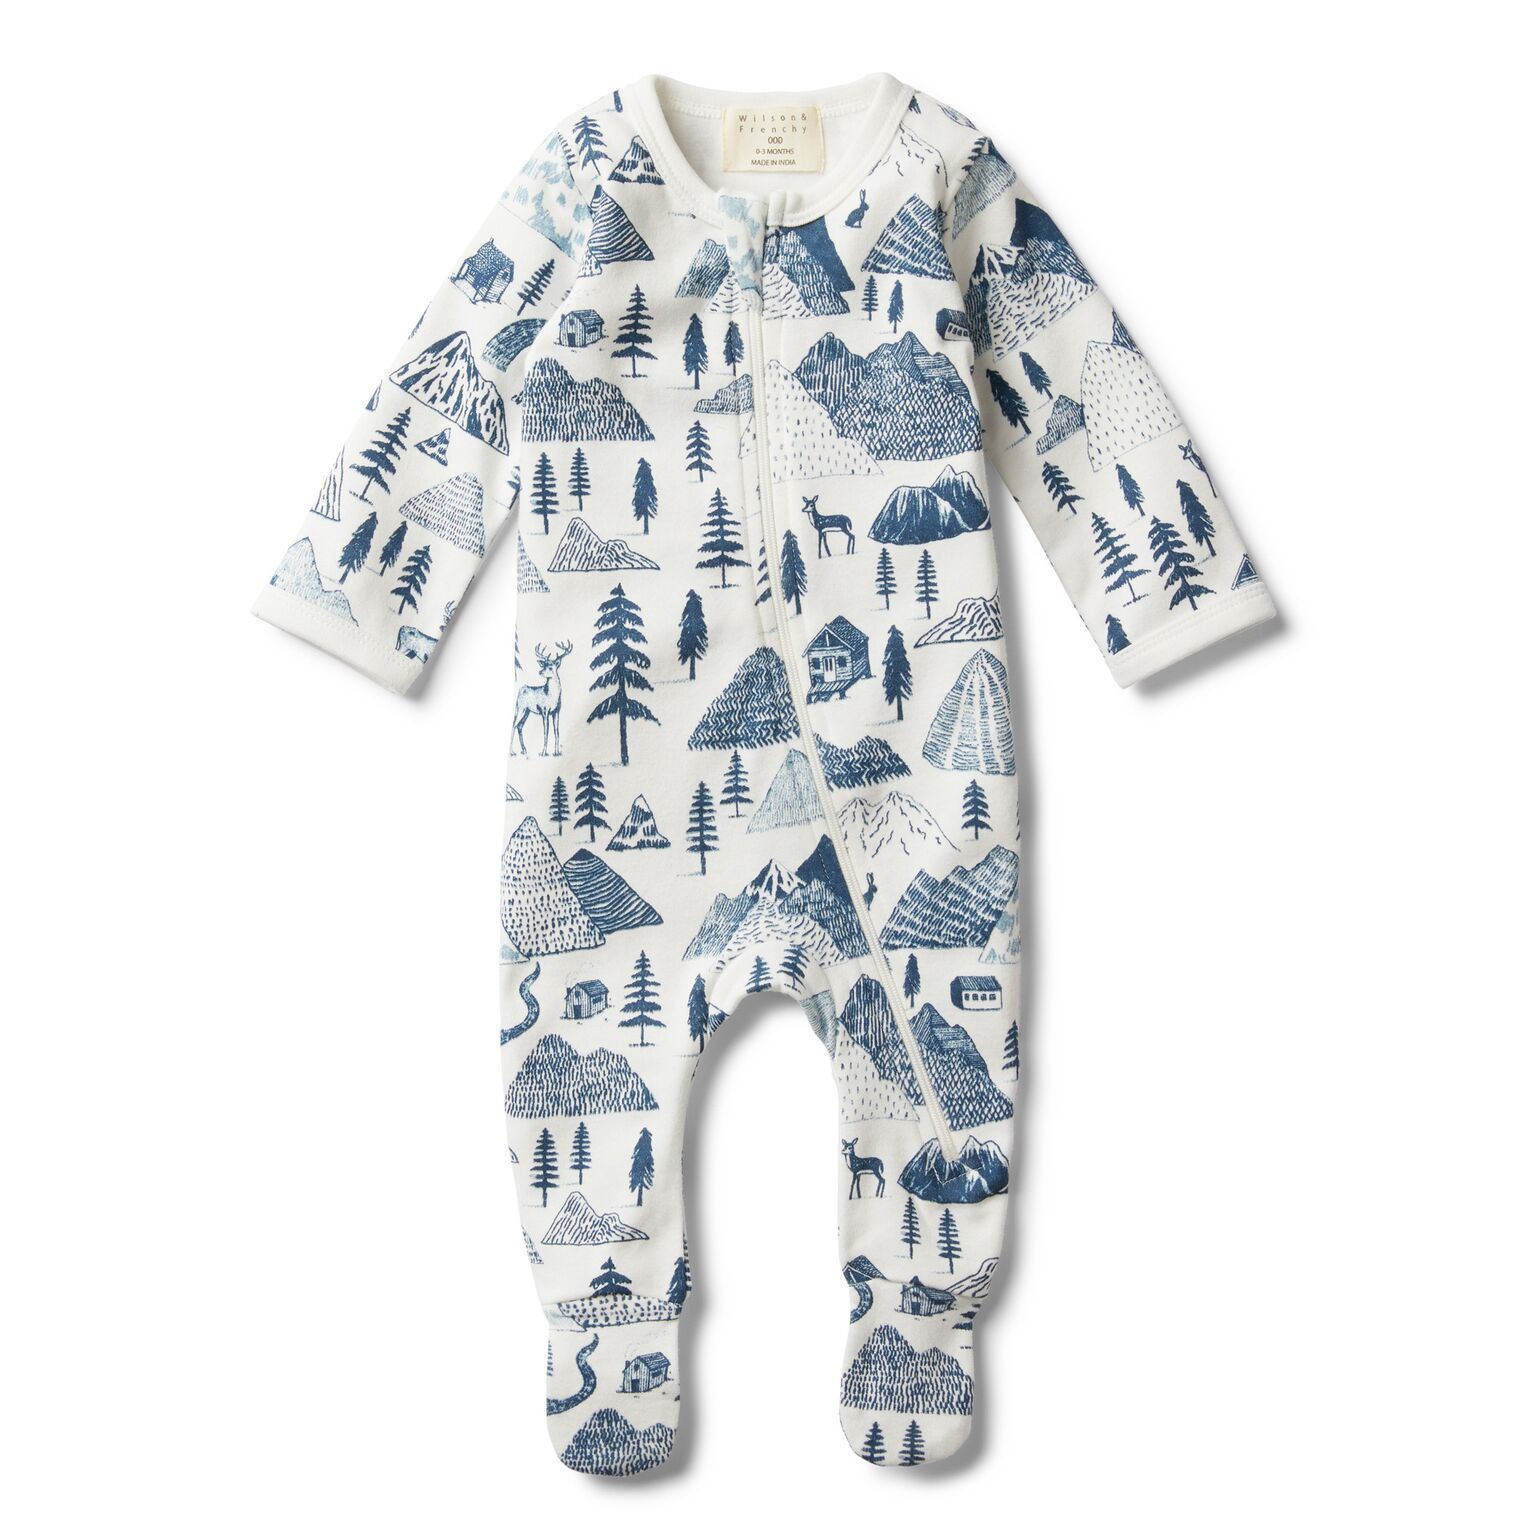 WF The hills zip suit with feet